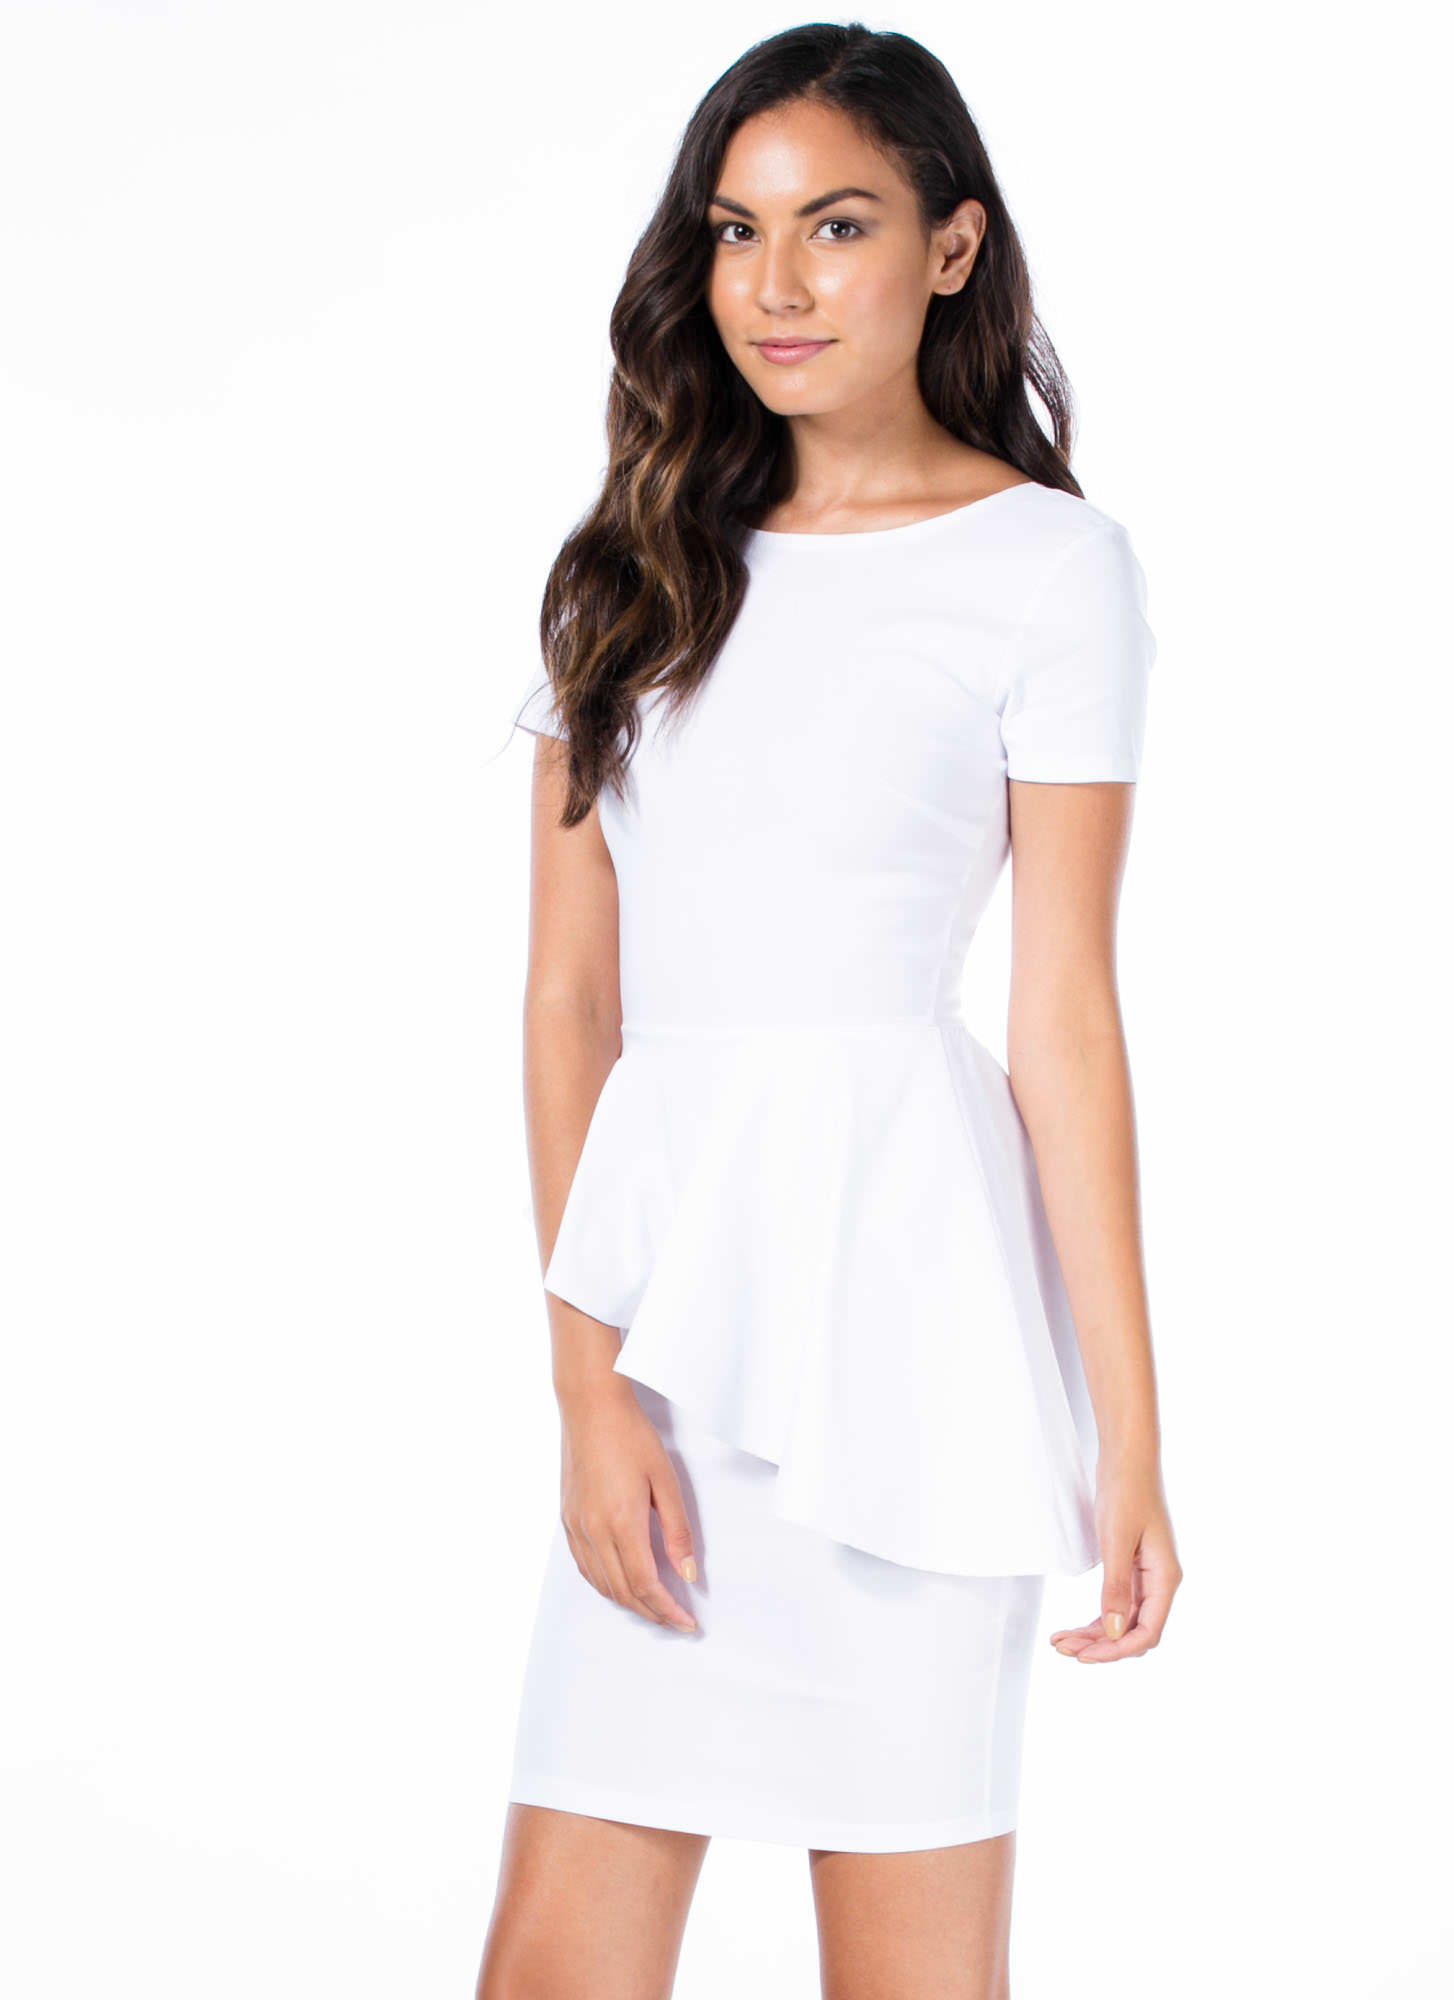 Ruffle Around The Edges Peplum Dress WHITE